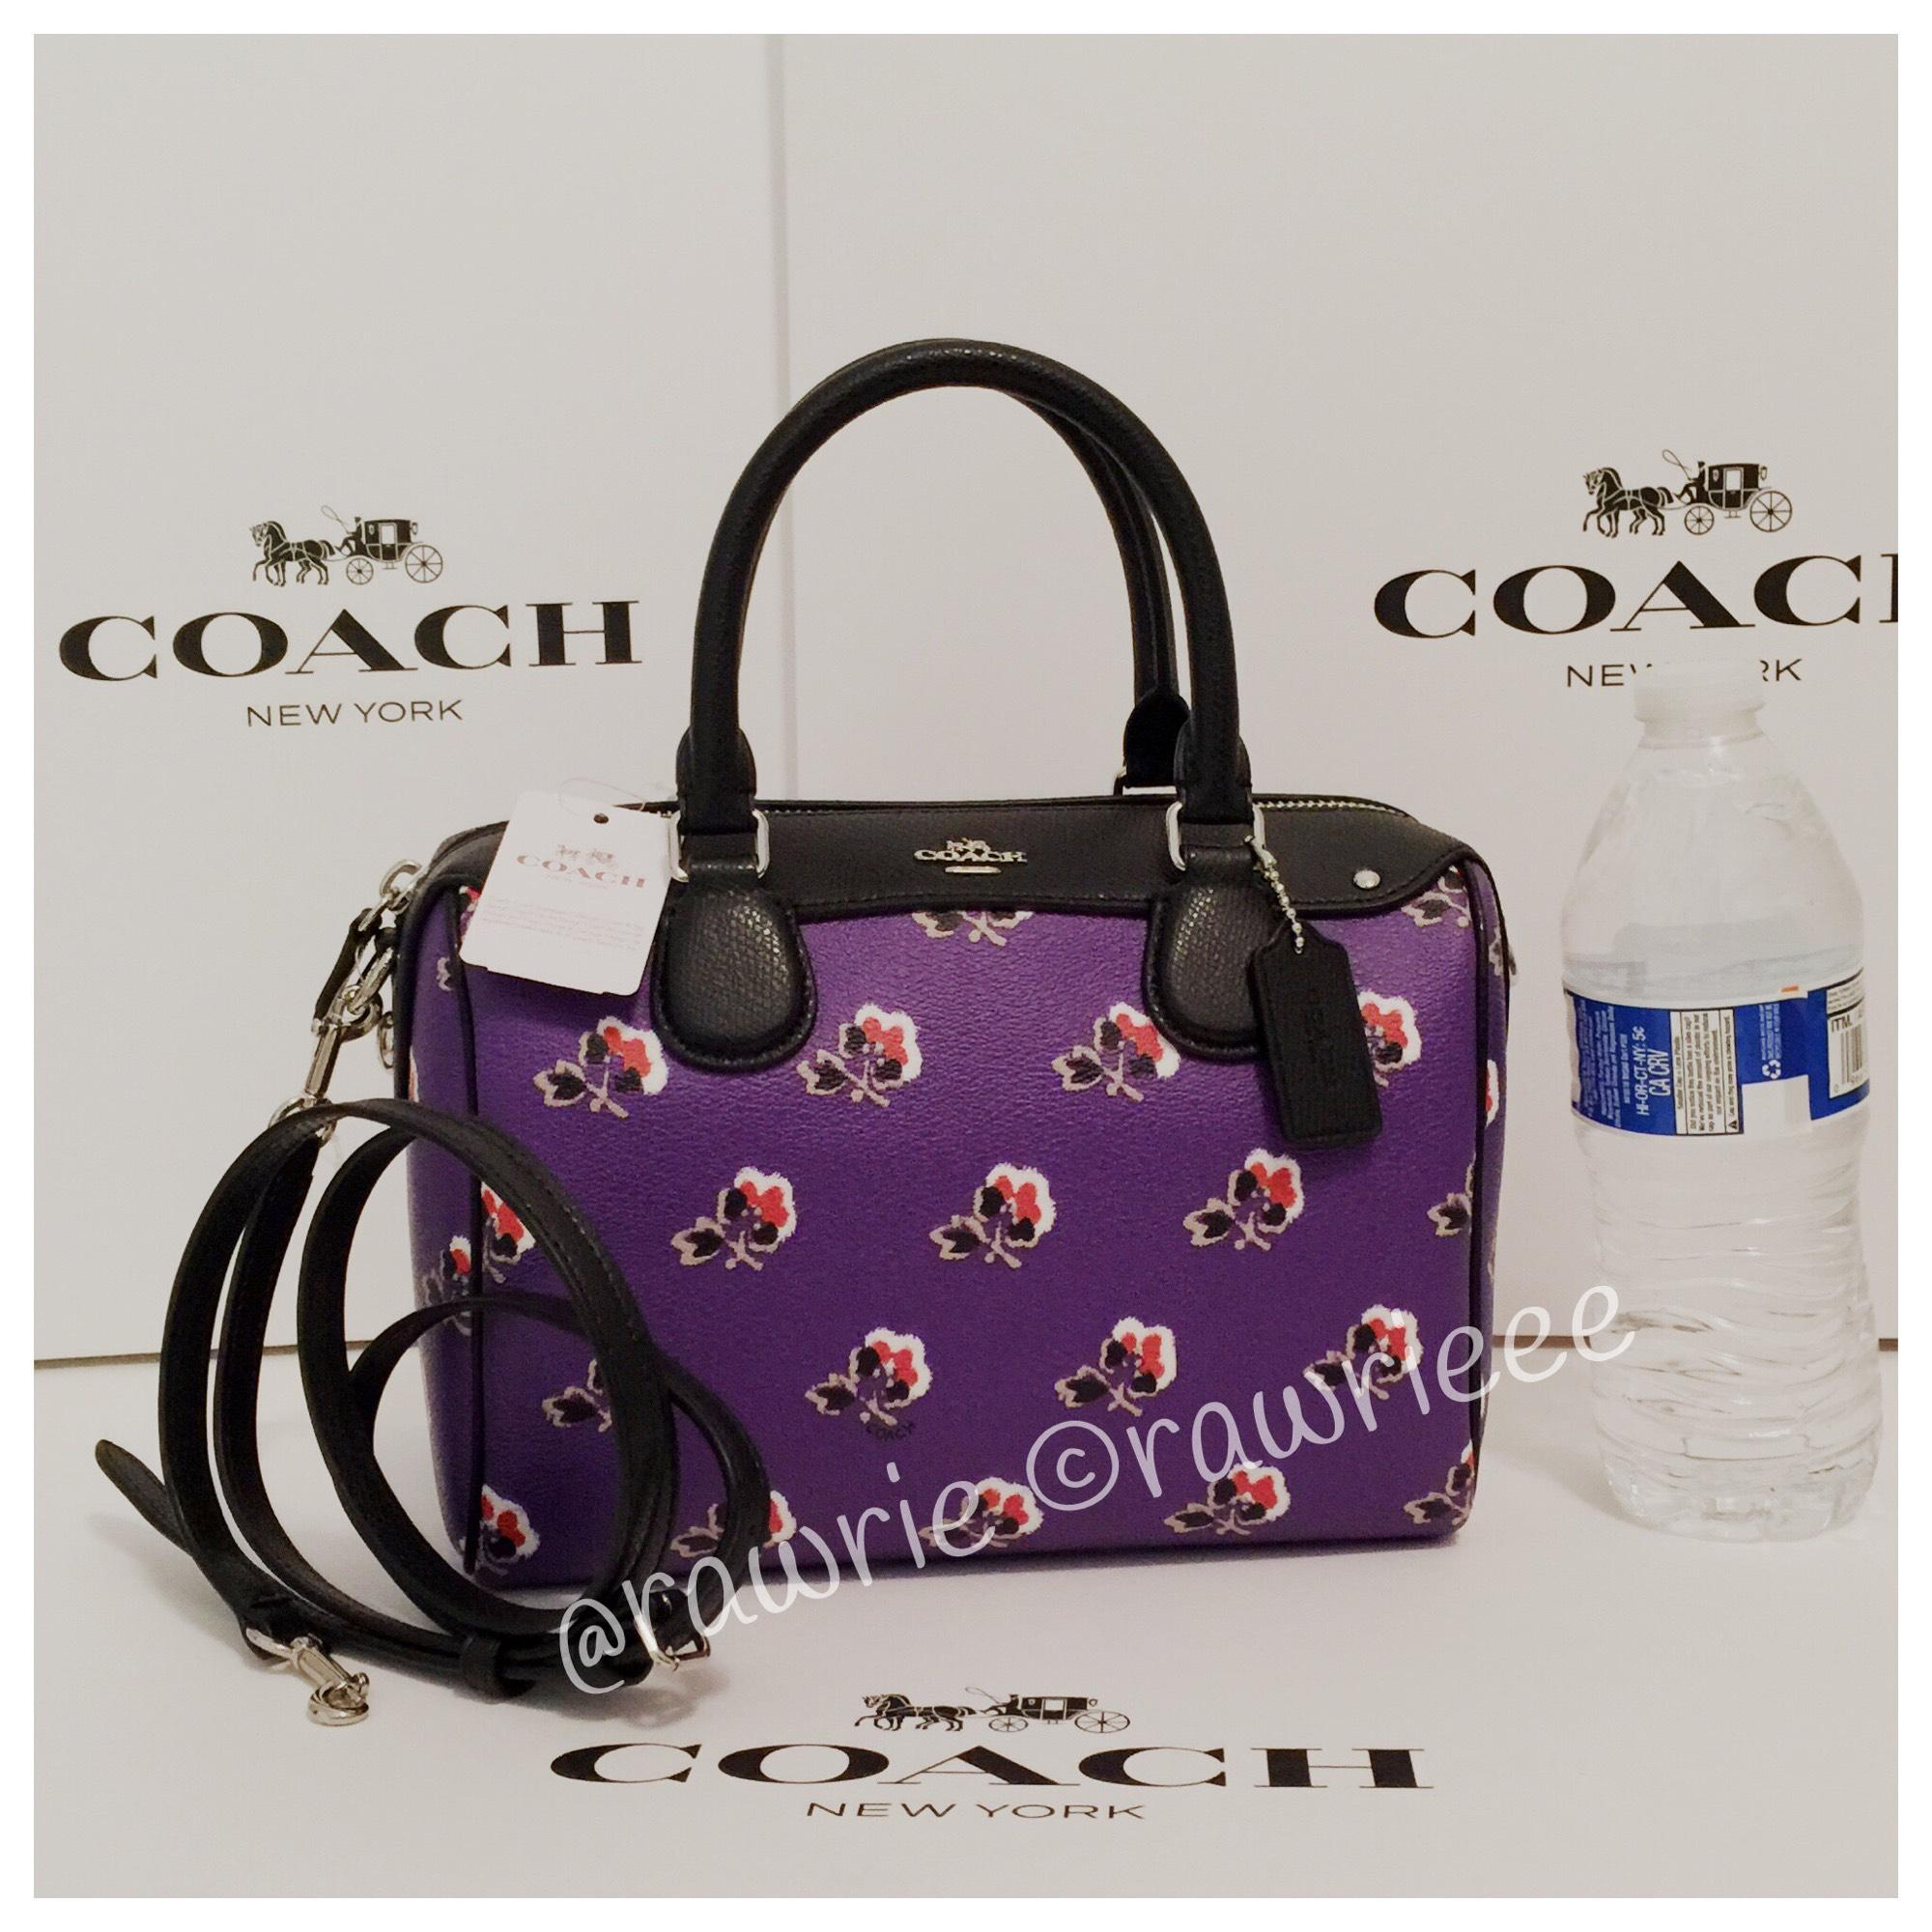 413859810c5d ... discount code for coach bennett bramble rose floral mini crossbody  black purple leather satchel tradesy d1515